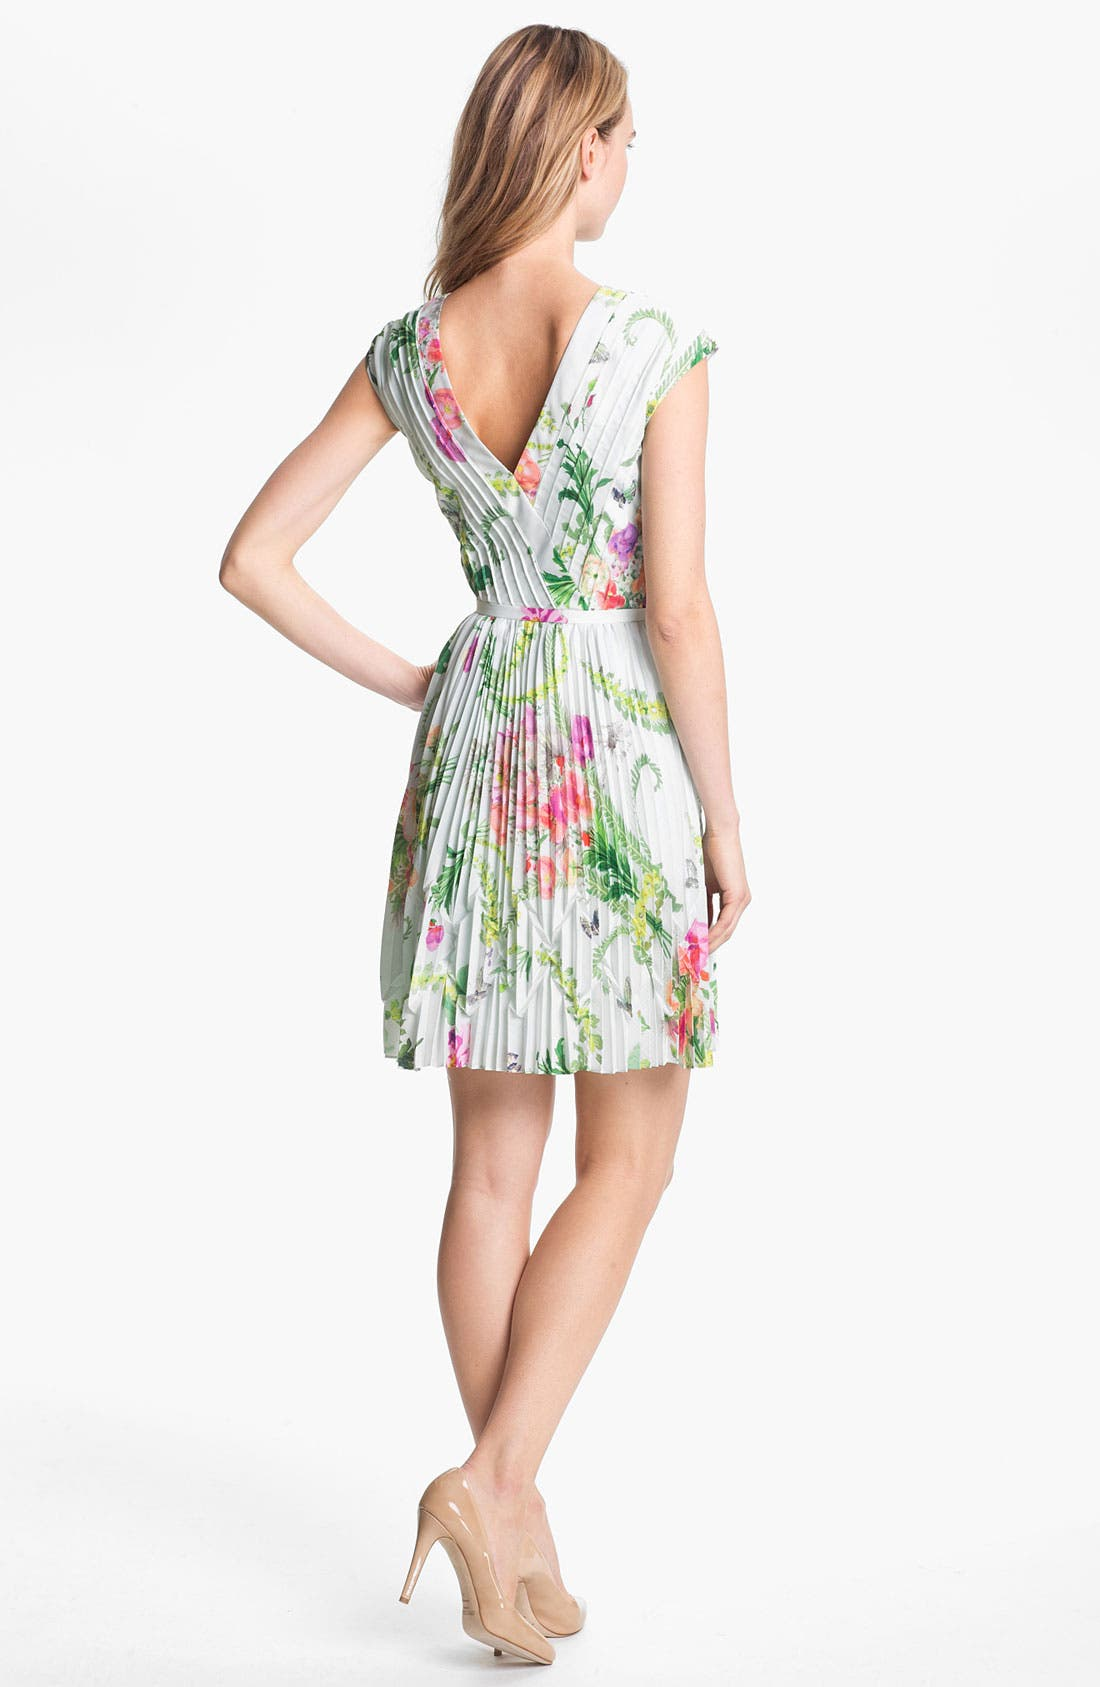 TED BAKER LONDON,                             'Wallpaper' Pleated A-Line Dress,                             Alternate thumbnail 2, color,                             331